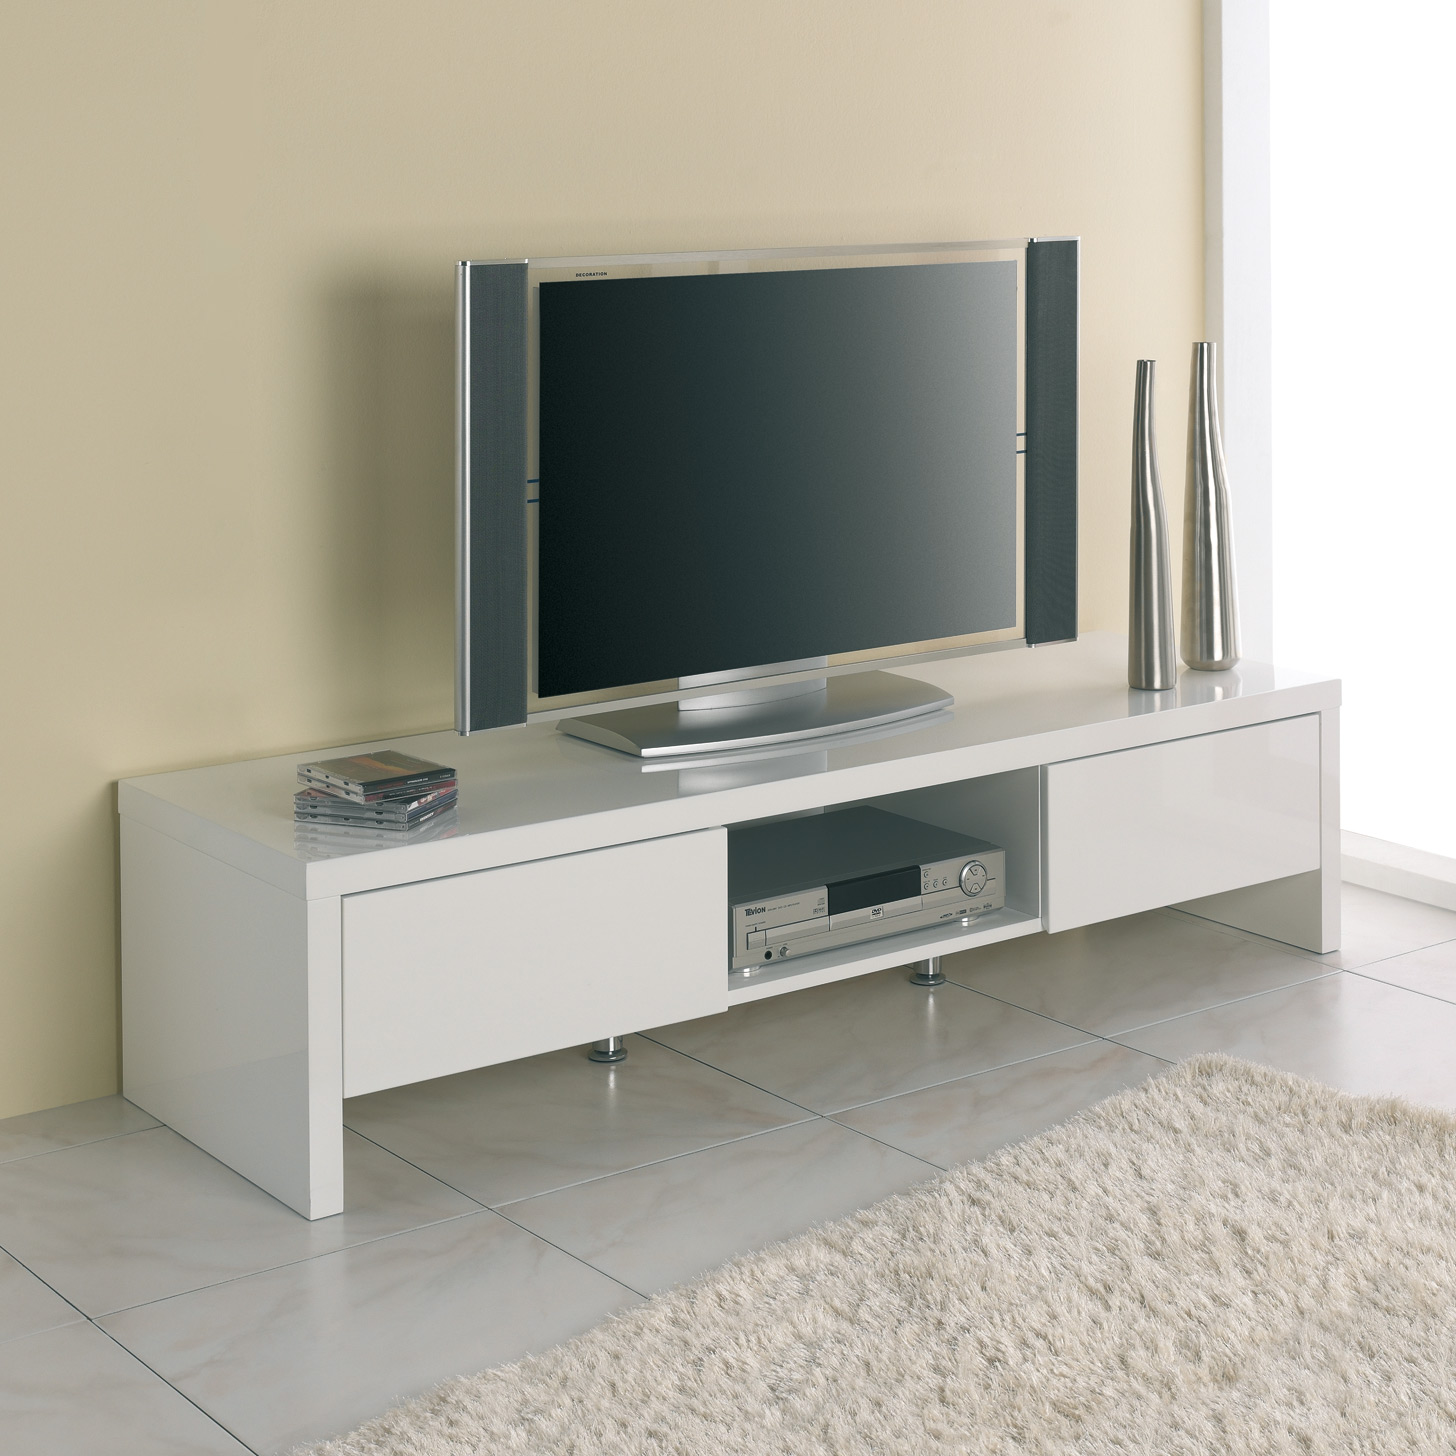 meuble tv 30 cm hauteur royal sofa id e de canap et meuble maison. Black Bedroom Furniture Sets. Home Design Ideas